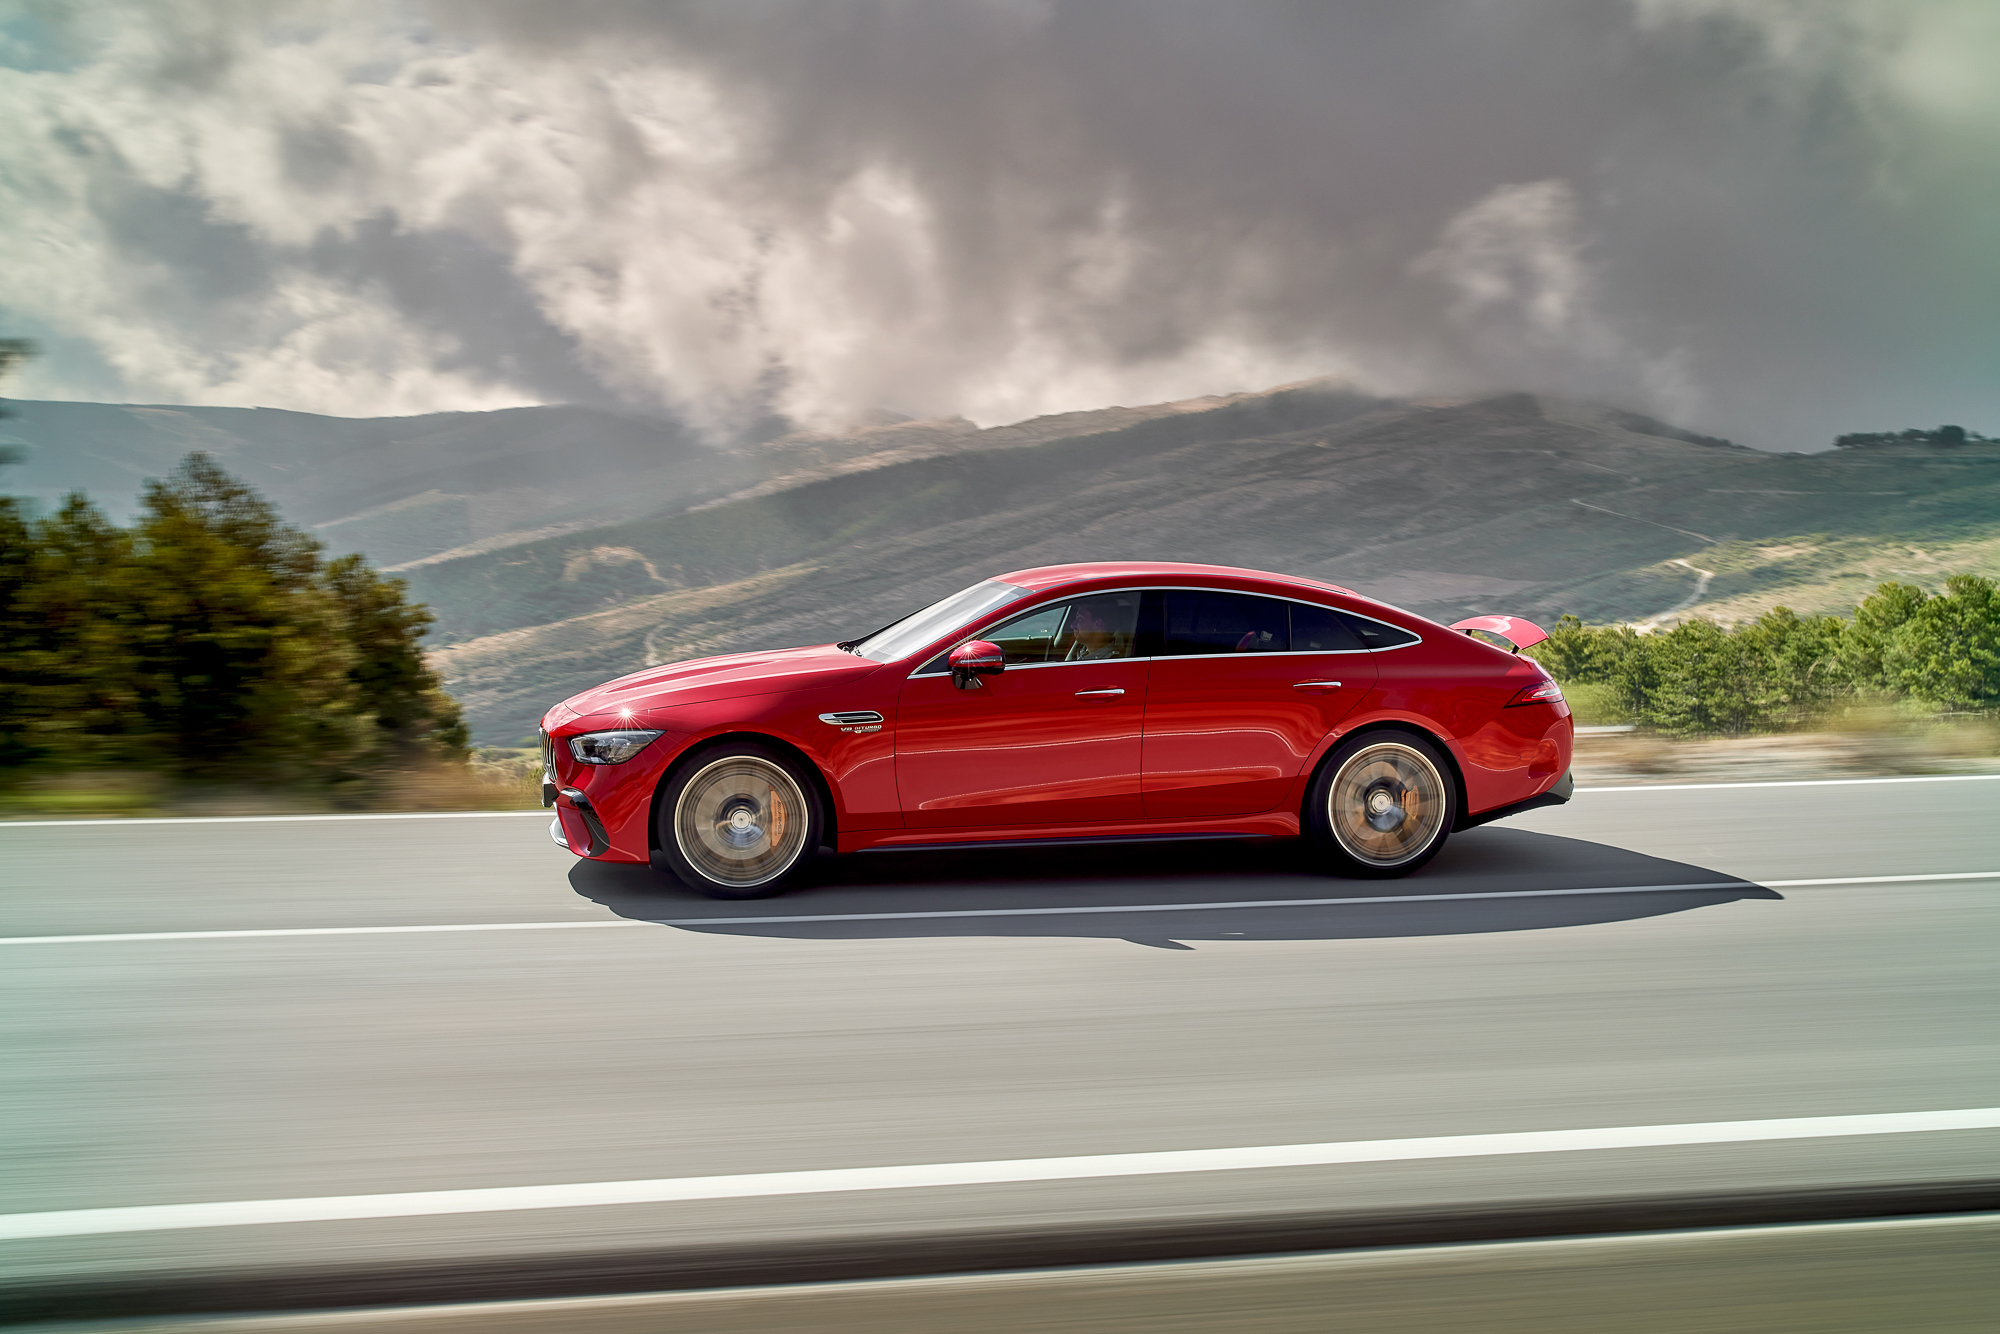 2023-Mercedes-AMG-GT-63-S-E-Performance side profile action